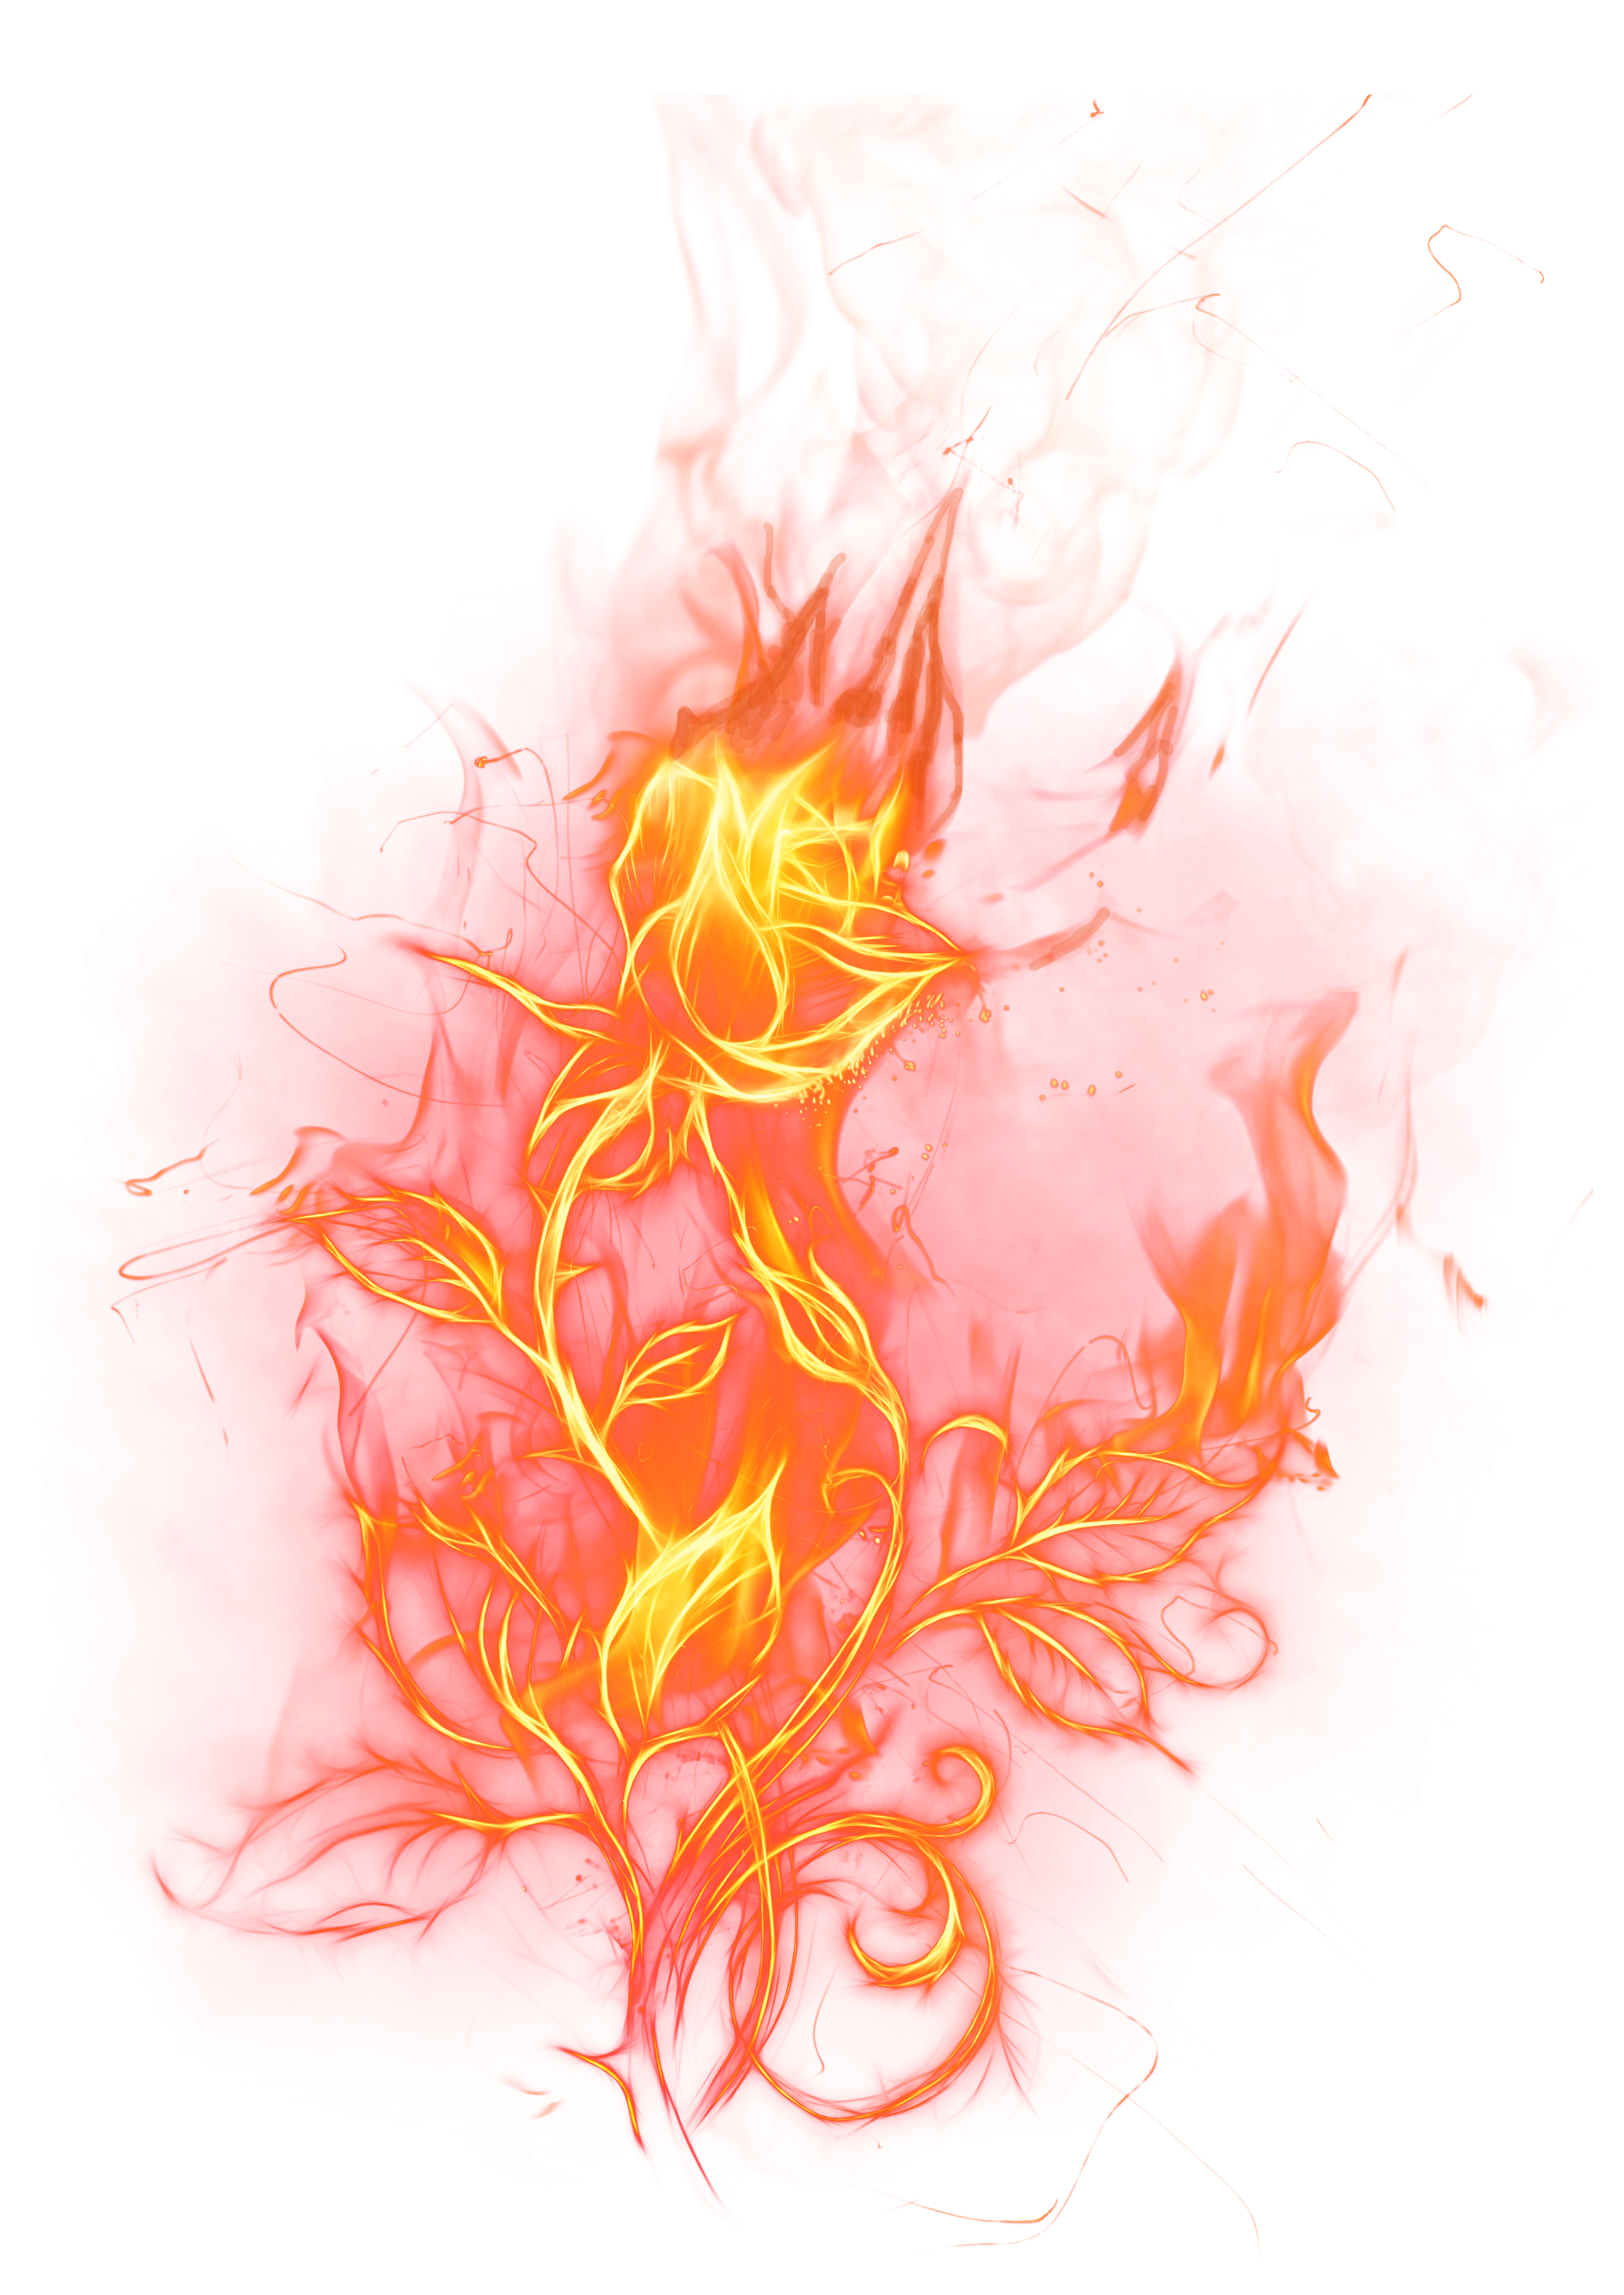 Fire flower png. Transparent rose clipart picture